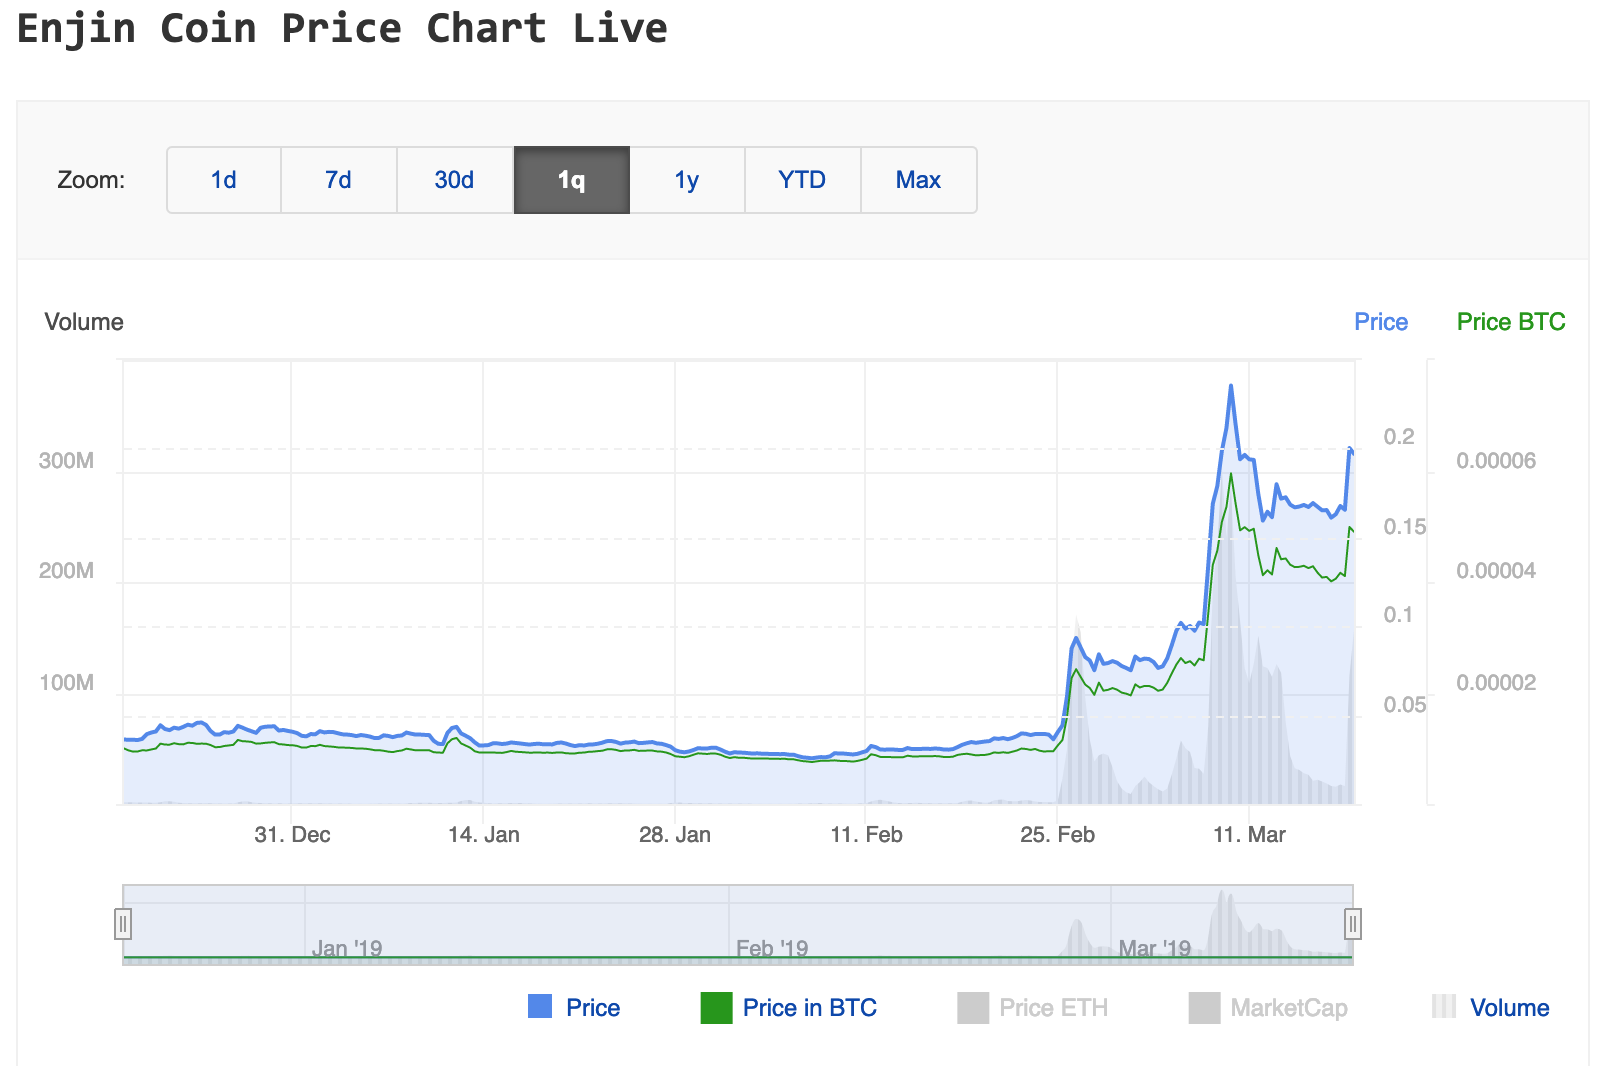 Enijn Coin price chart showing big price increase, that could be benefited for investors with Binance and KuCoin accounts